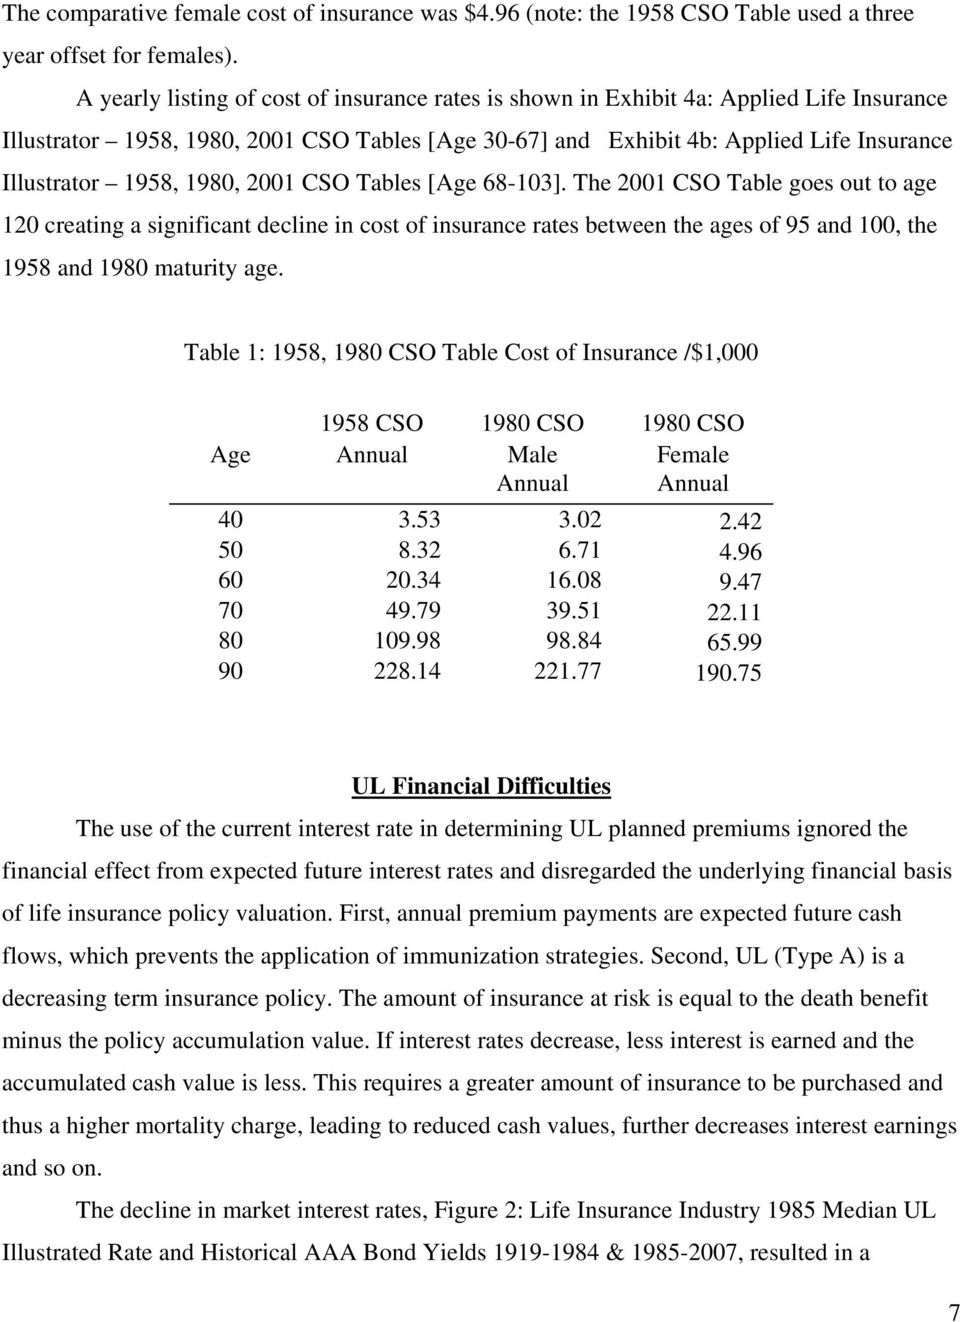 1980, 2001 CSO Tables [Age 68-103]. The 2001 CSO Table goes out to age 120 creating a significant decline in cost of insurance rates between the ages of 95 and 100, the 1958 and 1980 maturity age.